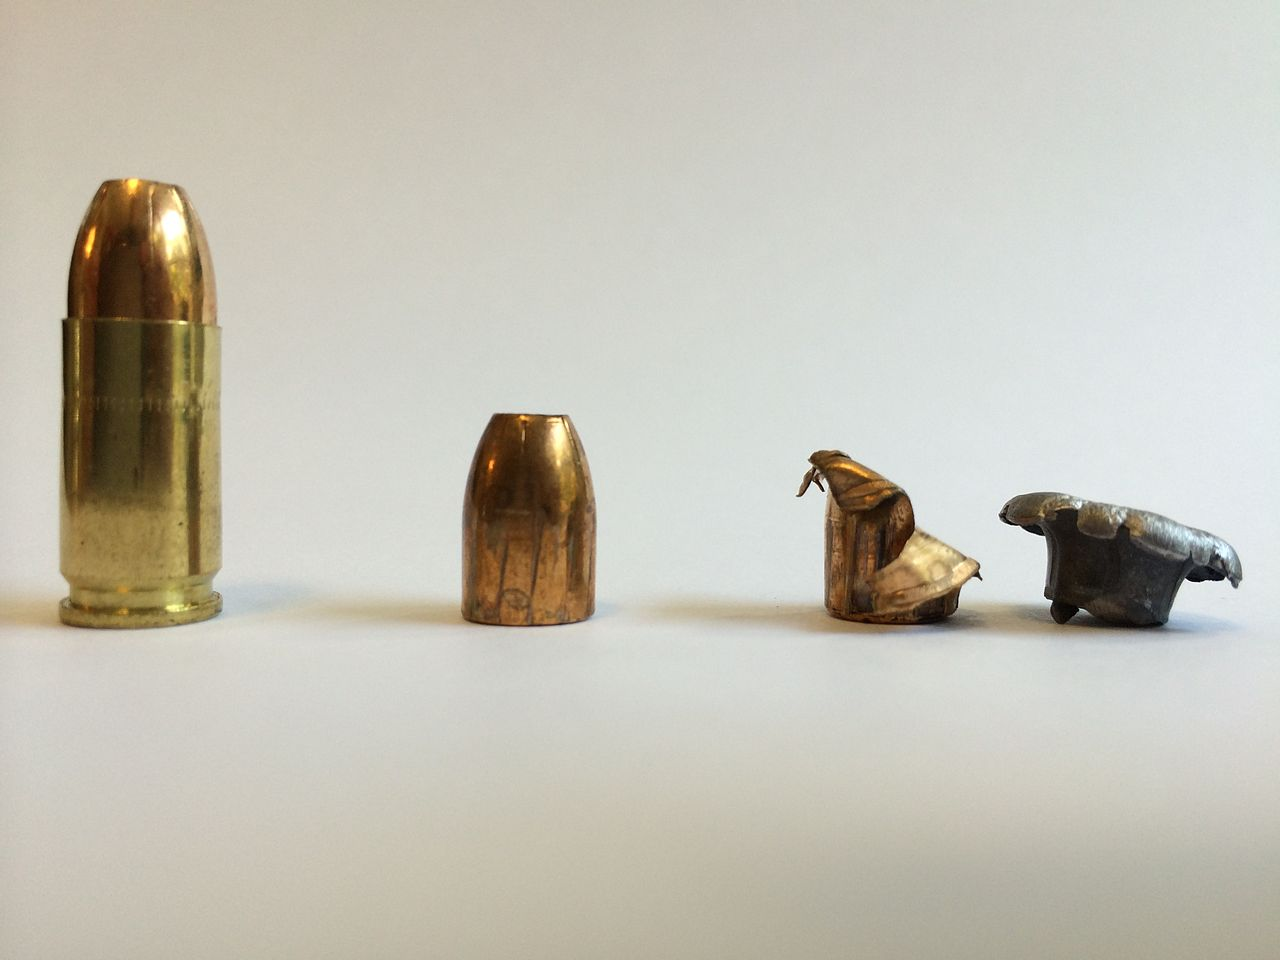 Are hollow-point bullets legal in California?